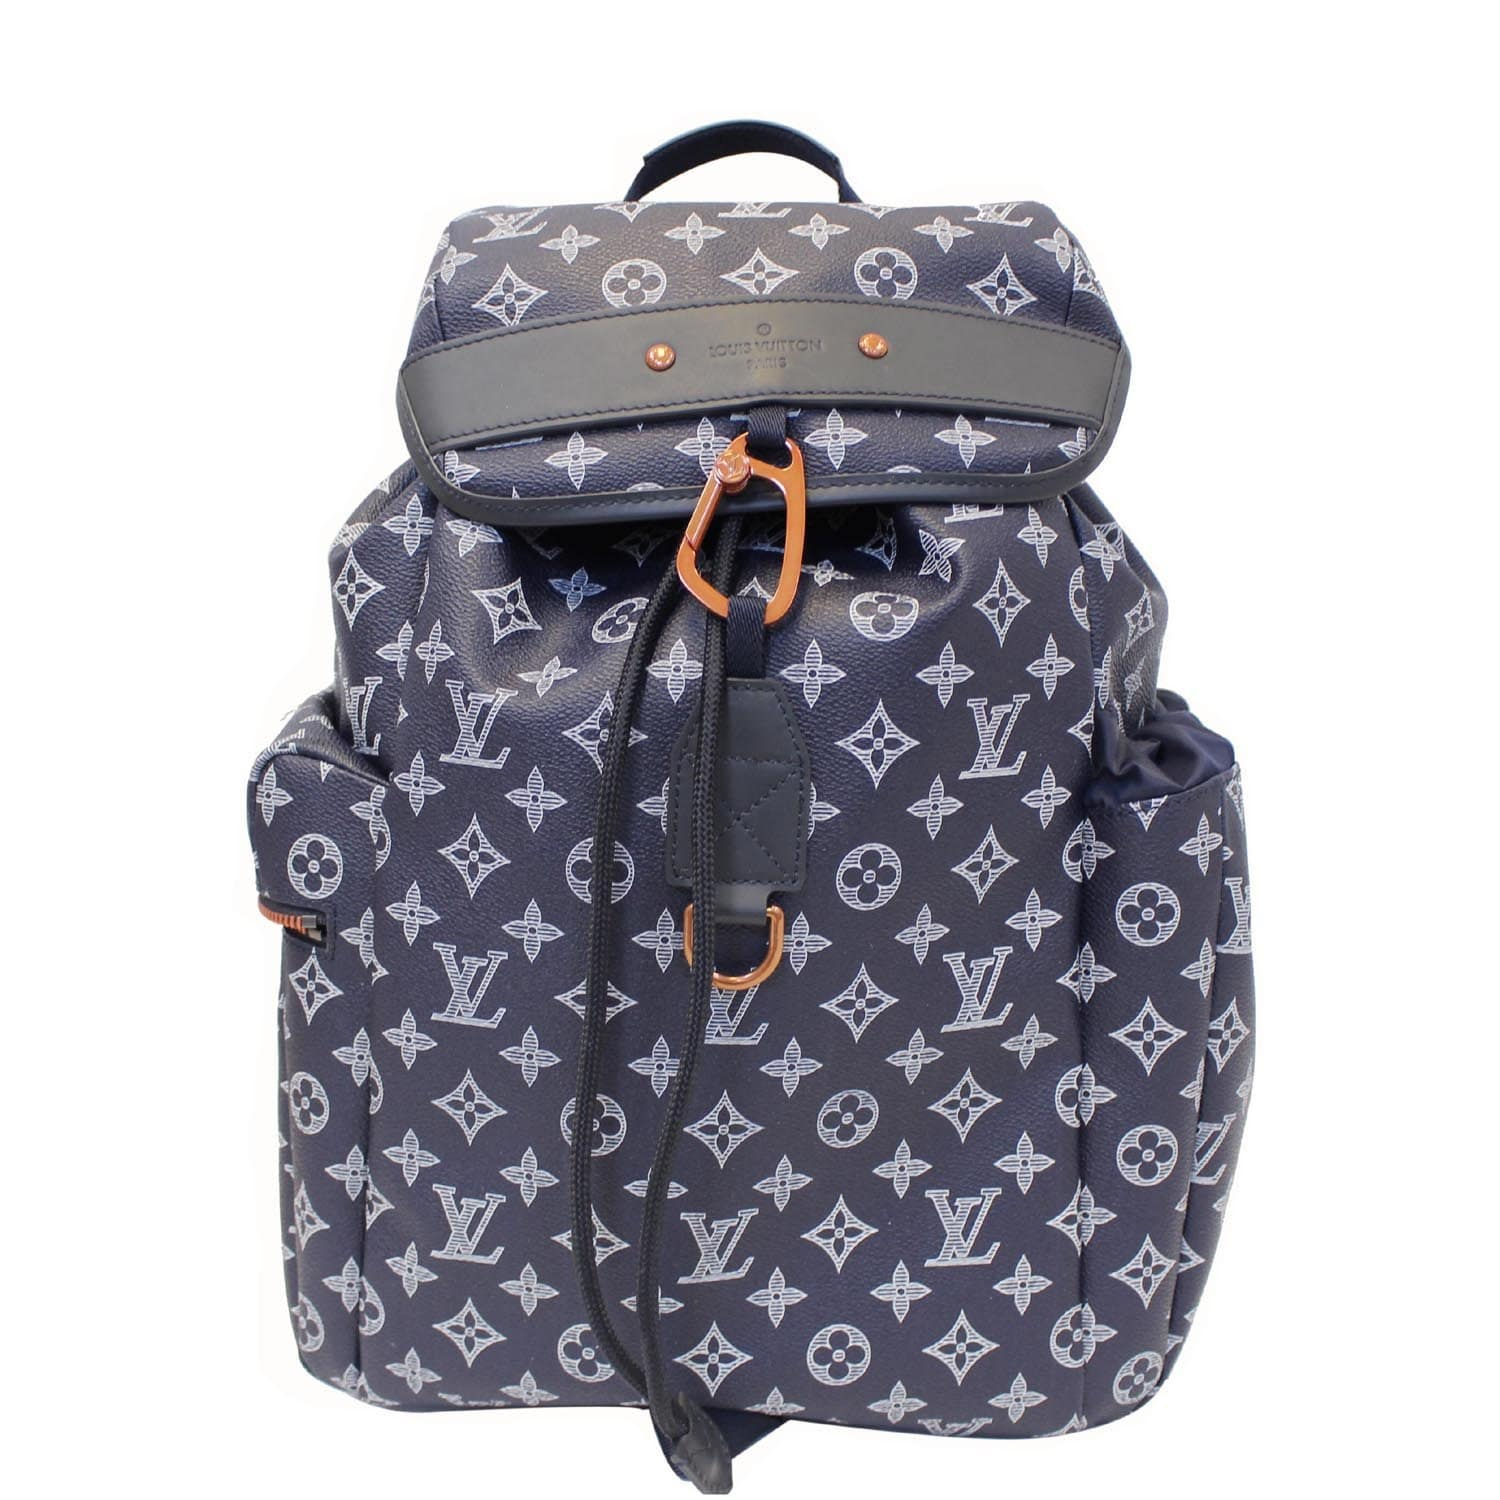 866bec517e LOUIS VUITTON Discovery Upside Down Monogram Backpack Bag Navy Blue